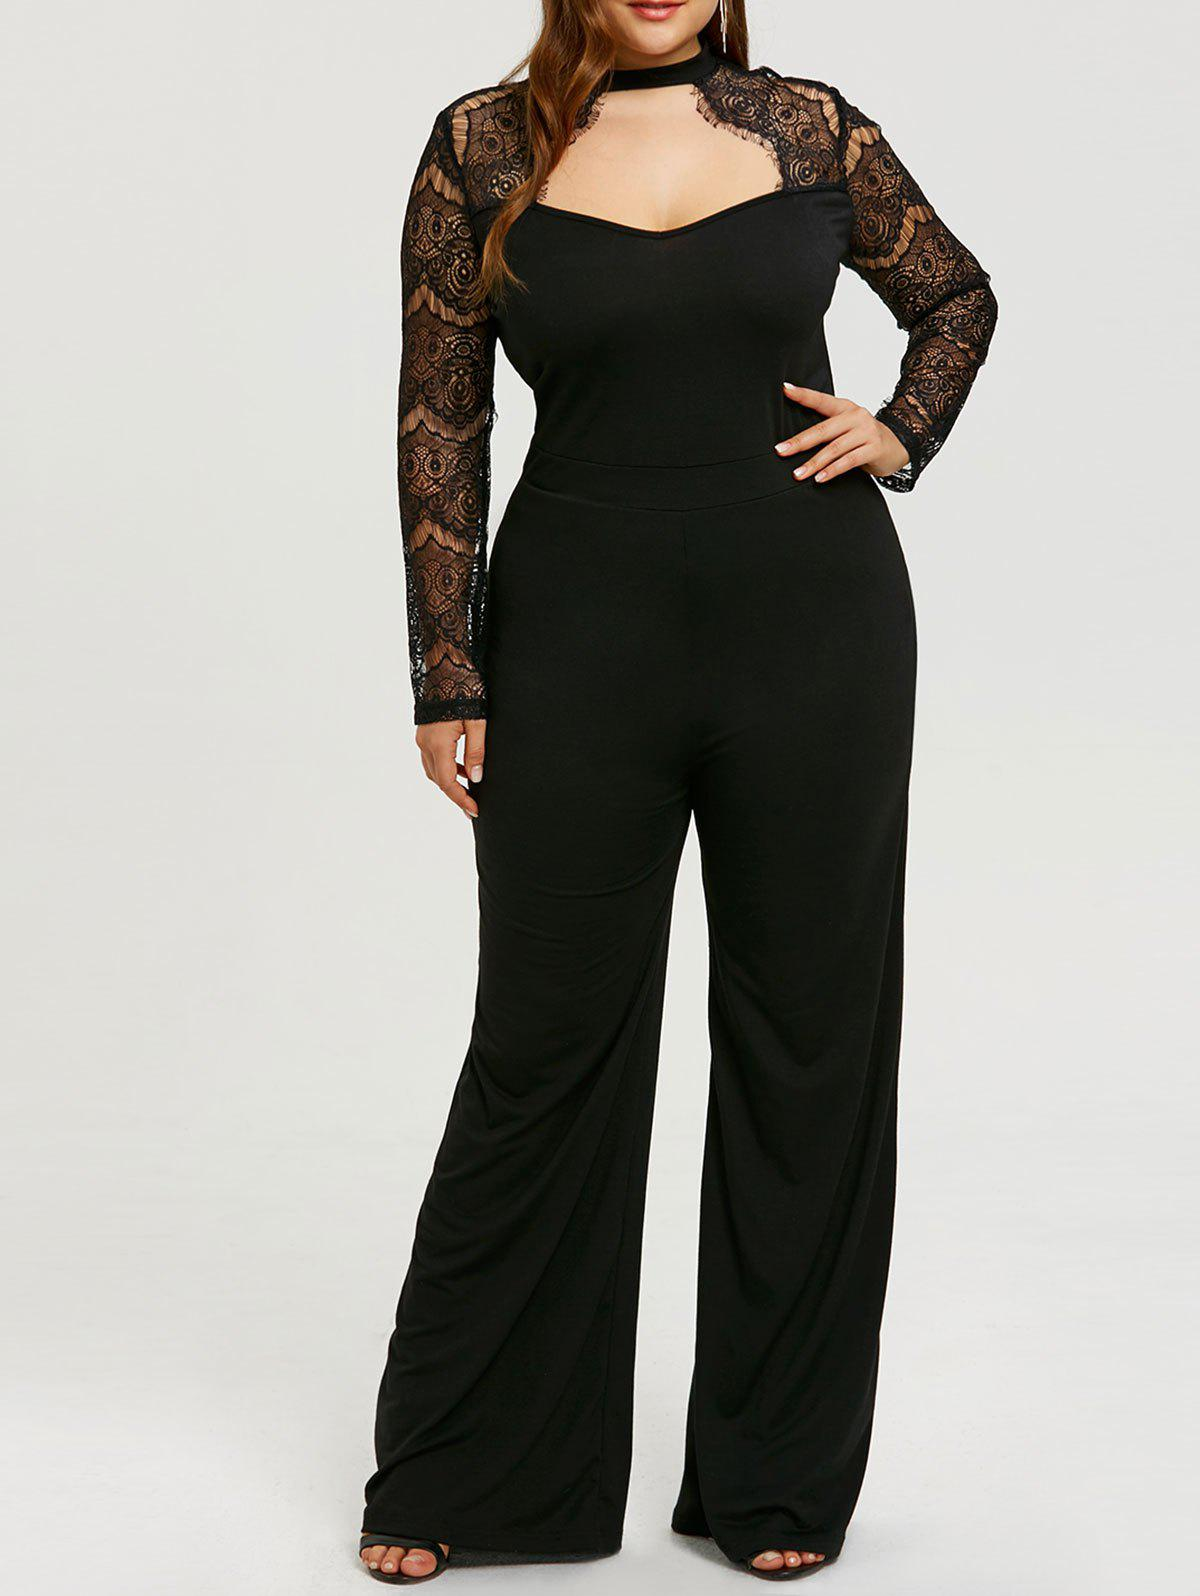 c090f50ed5c 2019 Lace Sleeve Plus Size Cut Out Jumpsuit